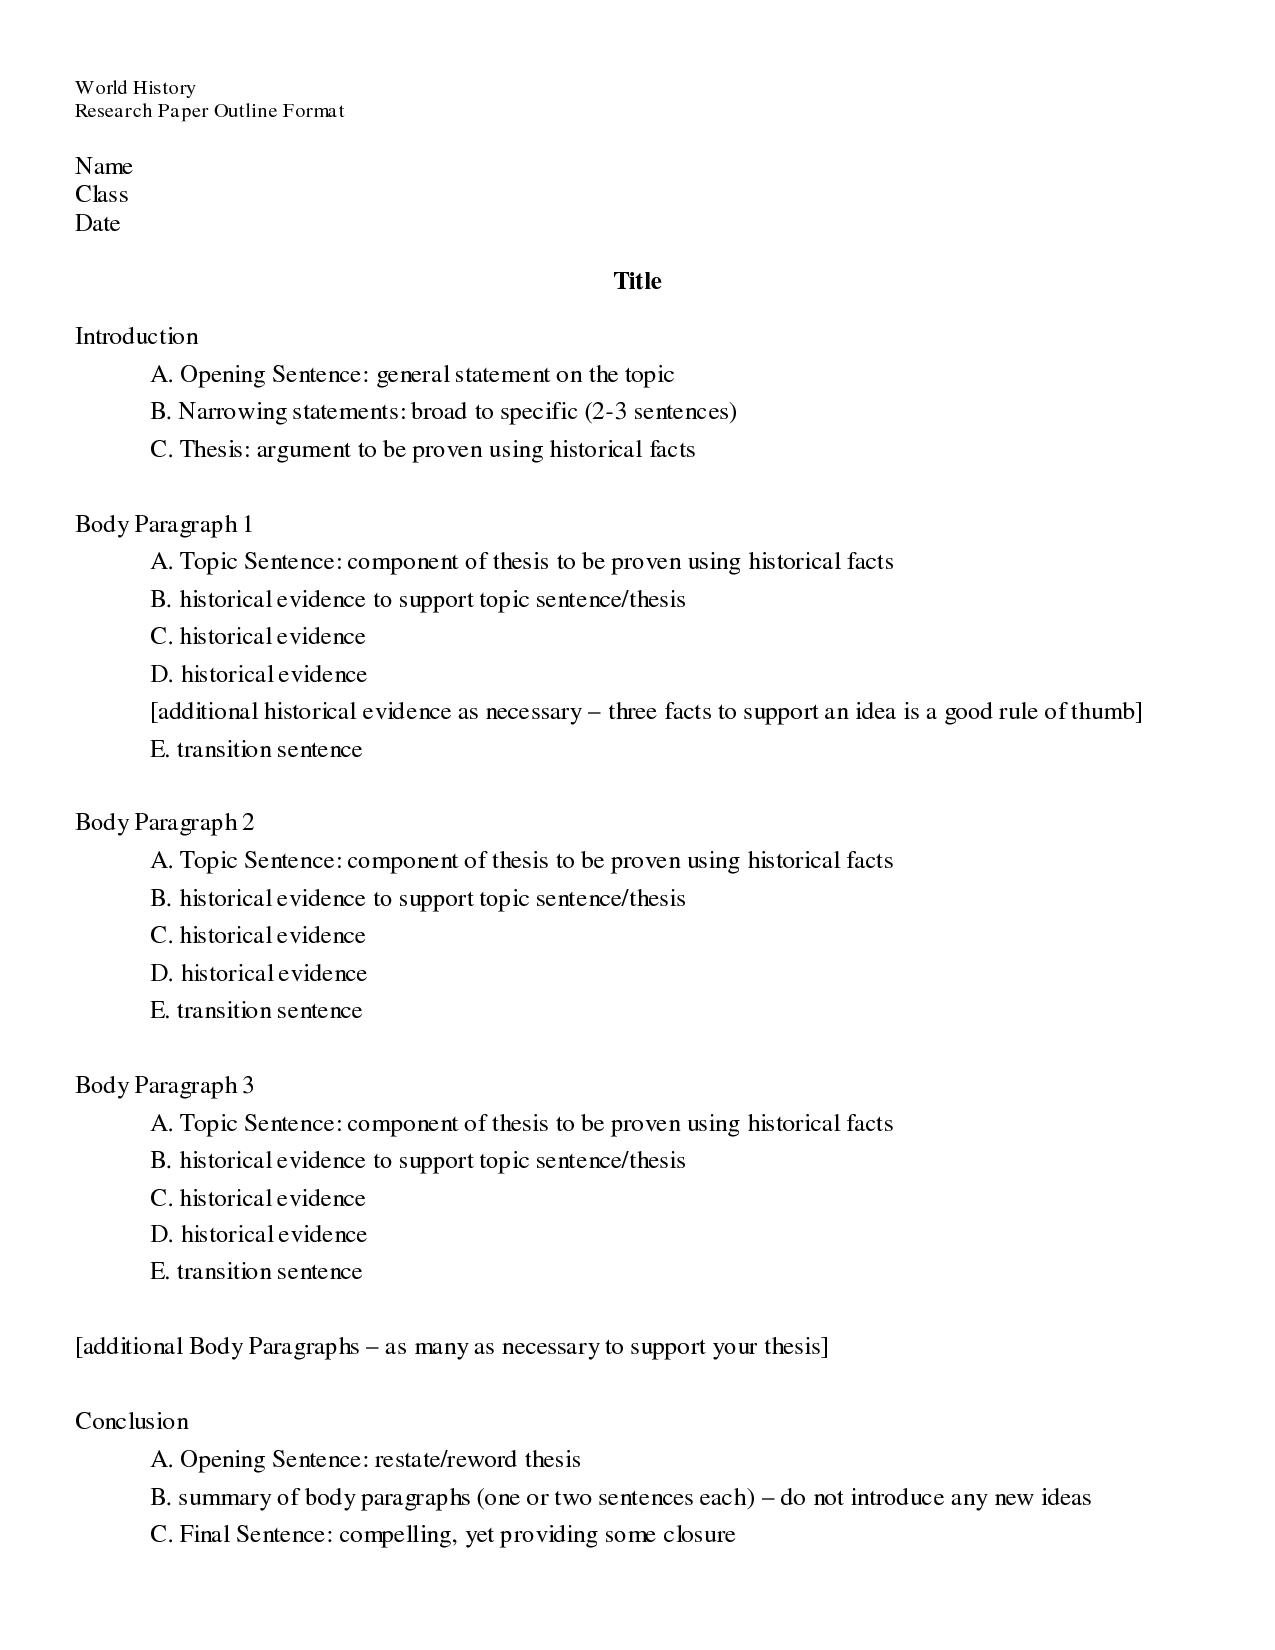 015 Biology Research Paper Sample Outline Remarkable Format Example Full